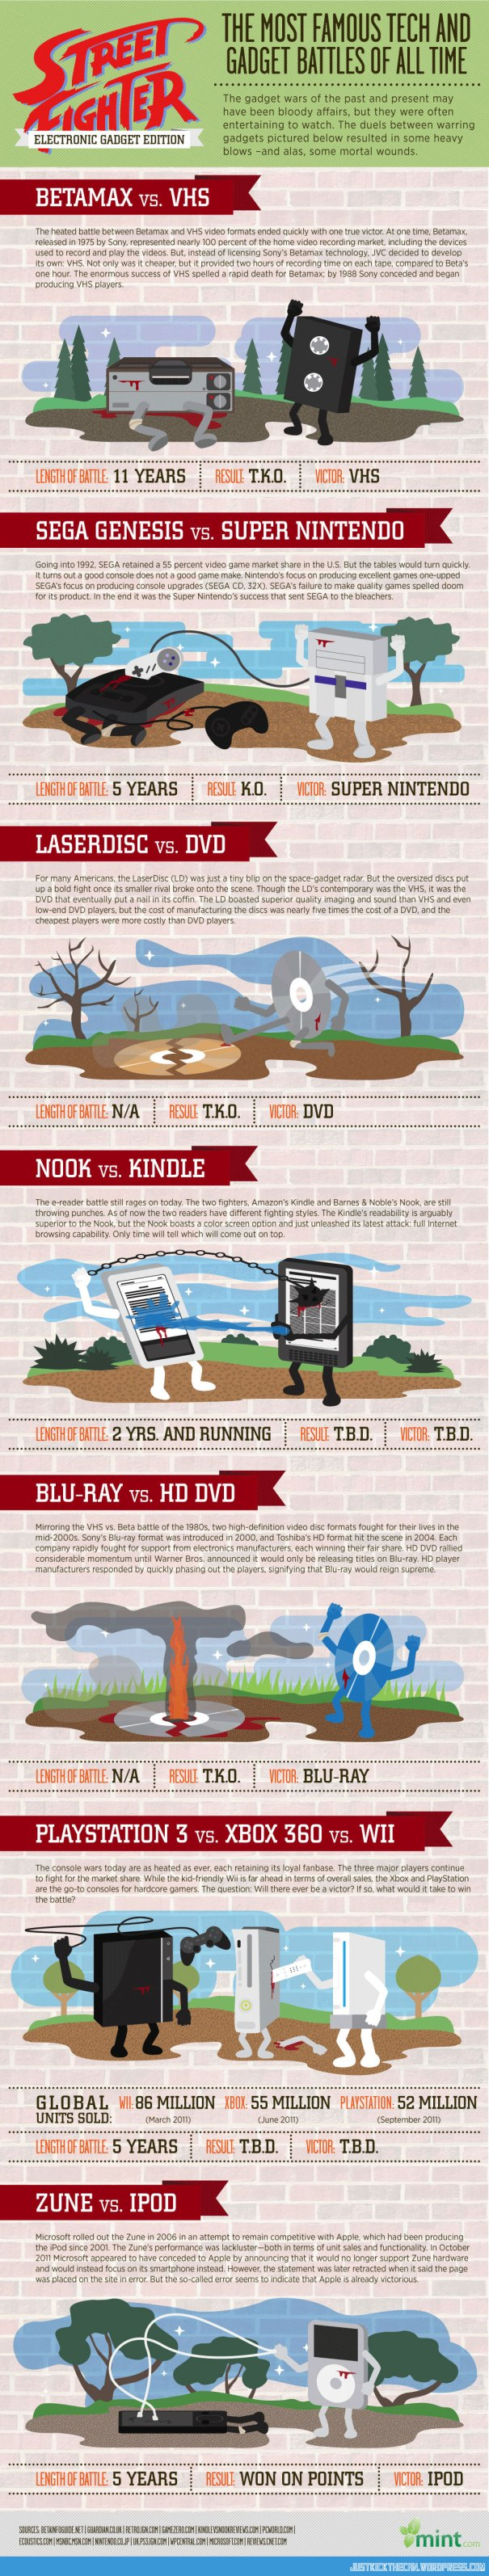 cool-infographic-Street-Fighter-gadget